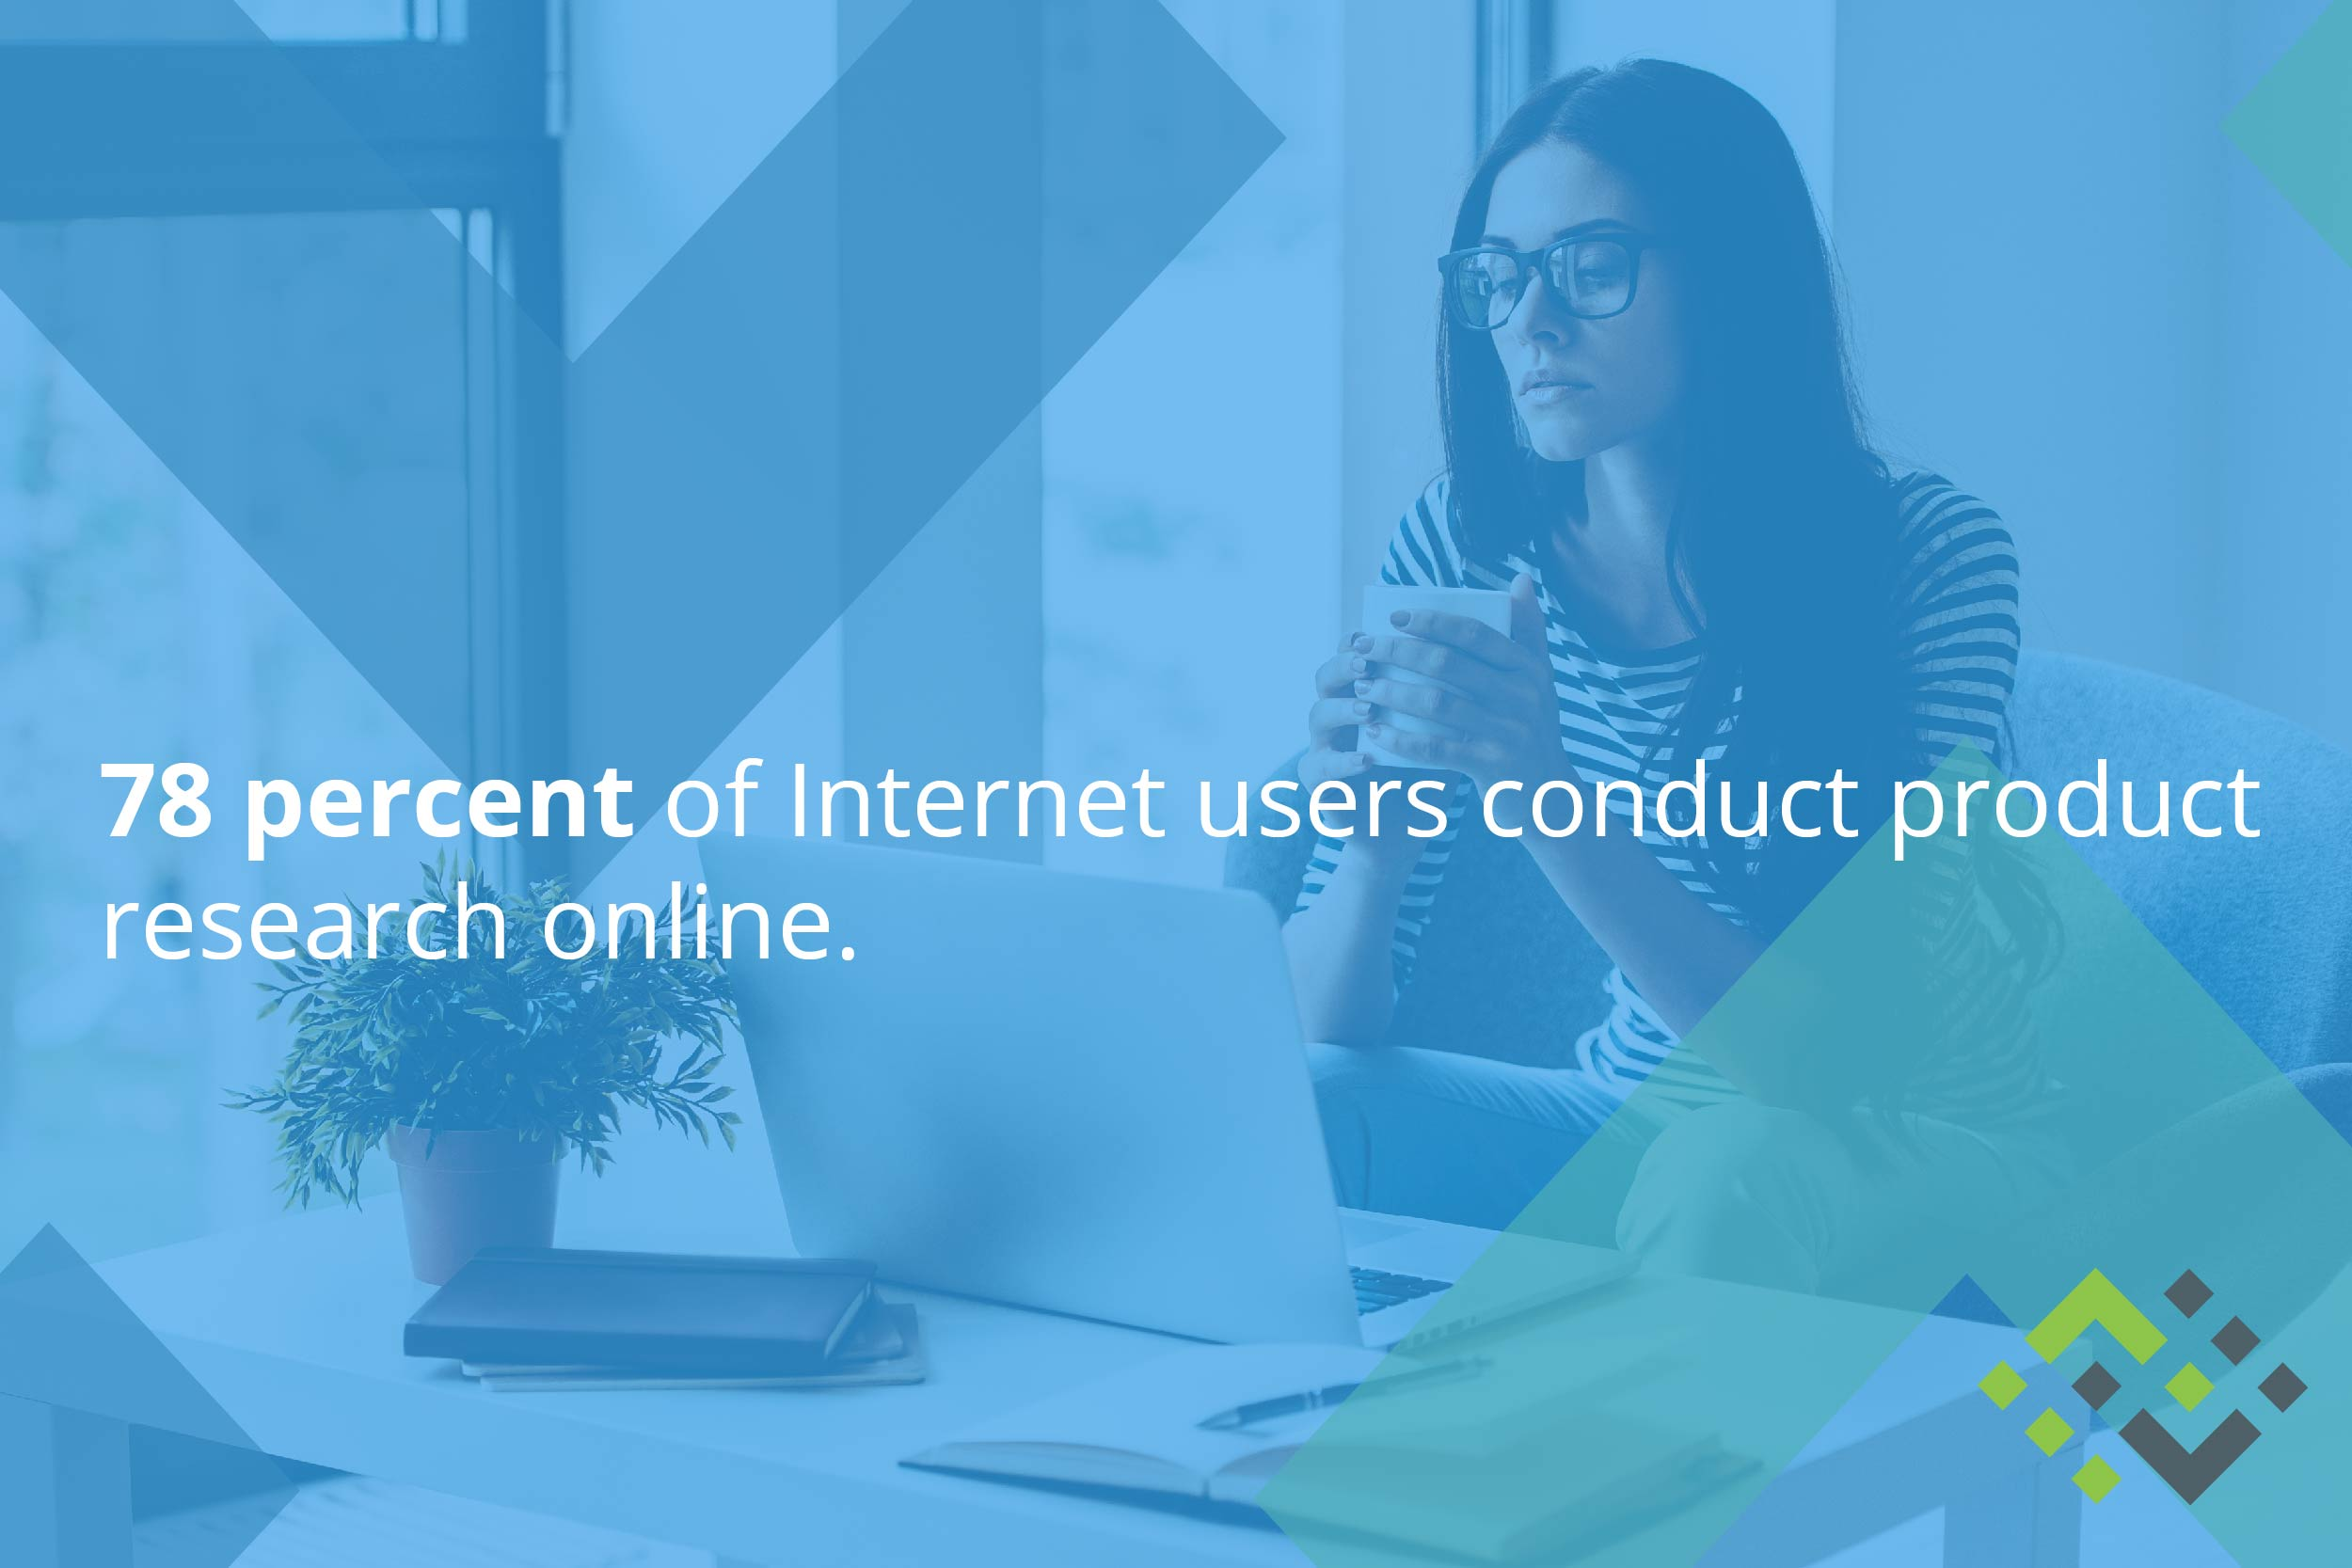 78 percent of internet users conduct product research online.